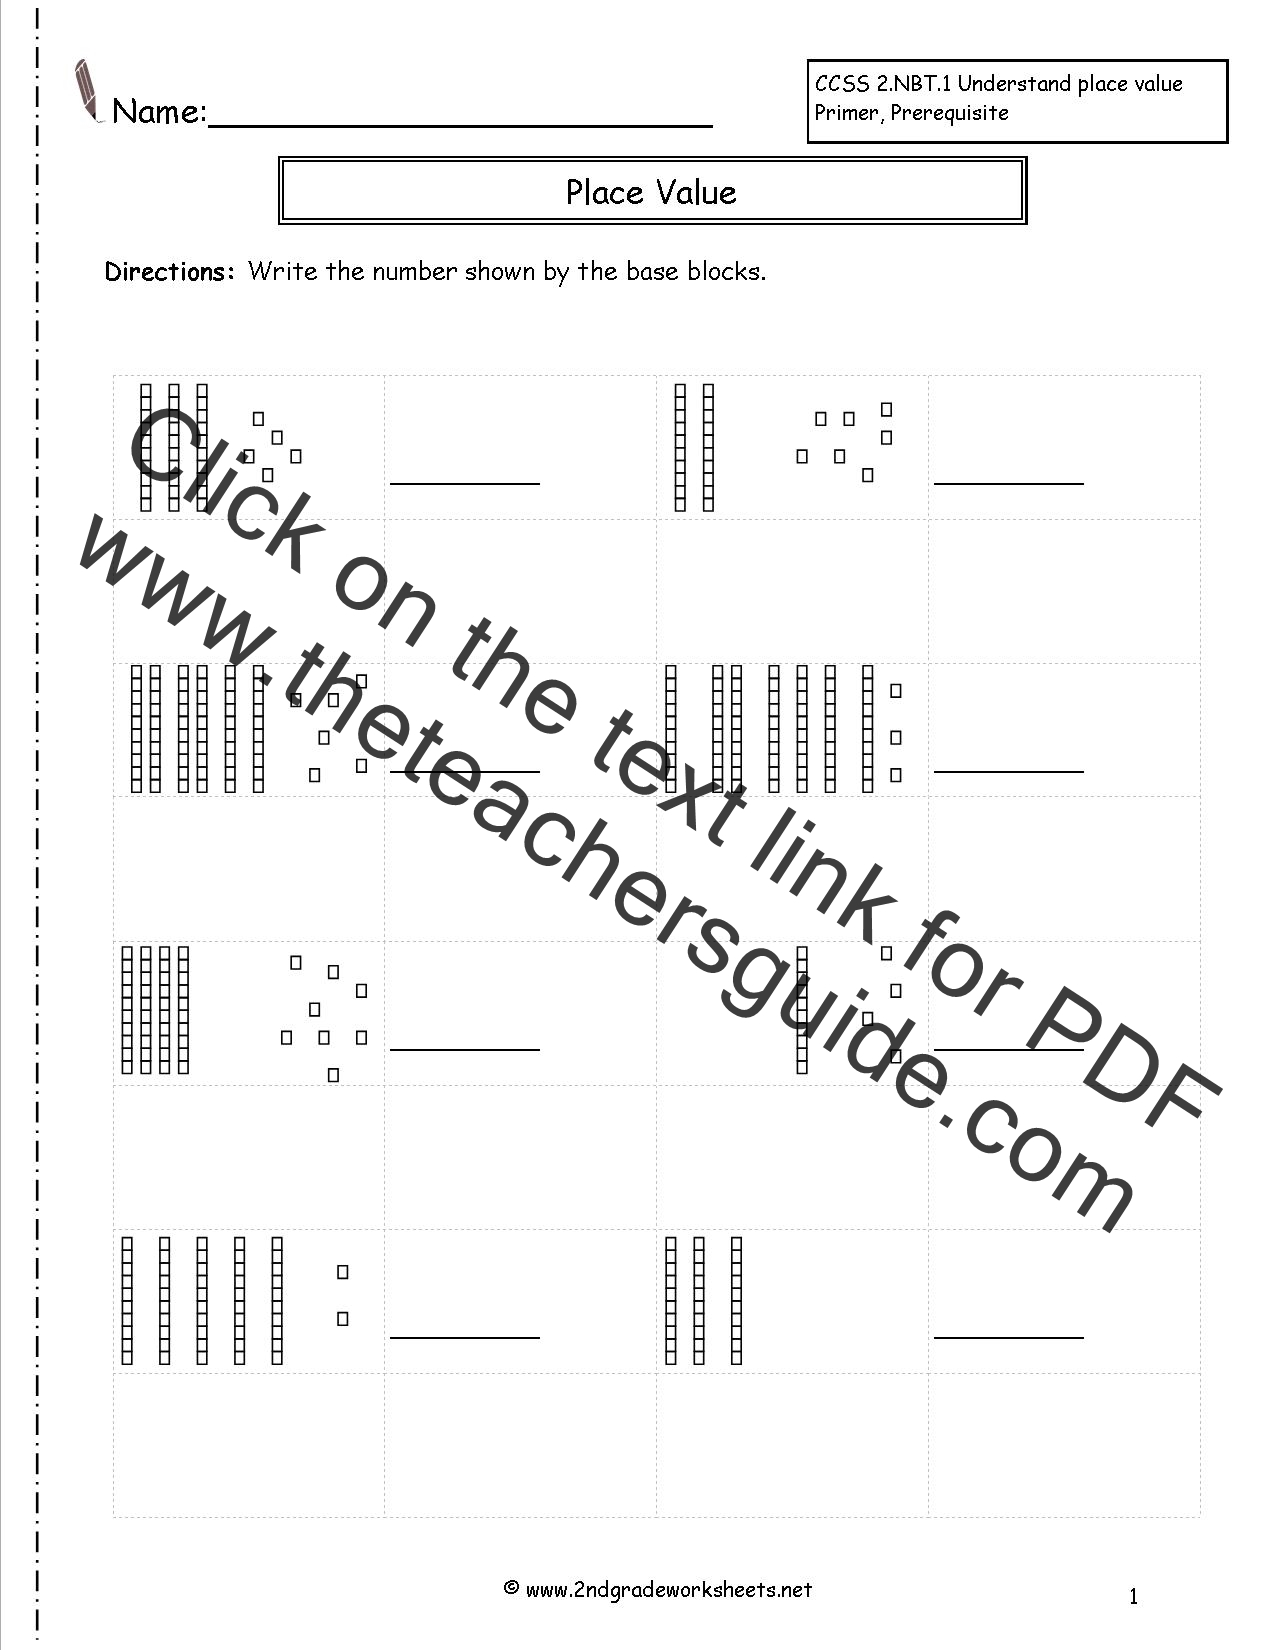 Value Worksheets from The Teacher'-s Guide